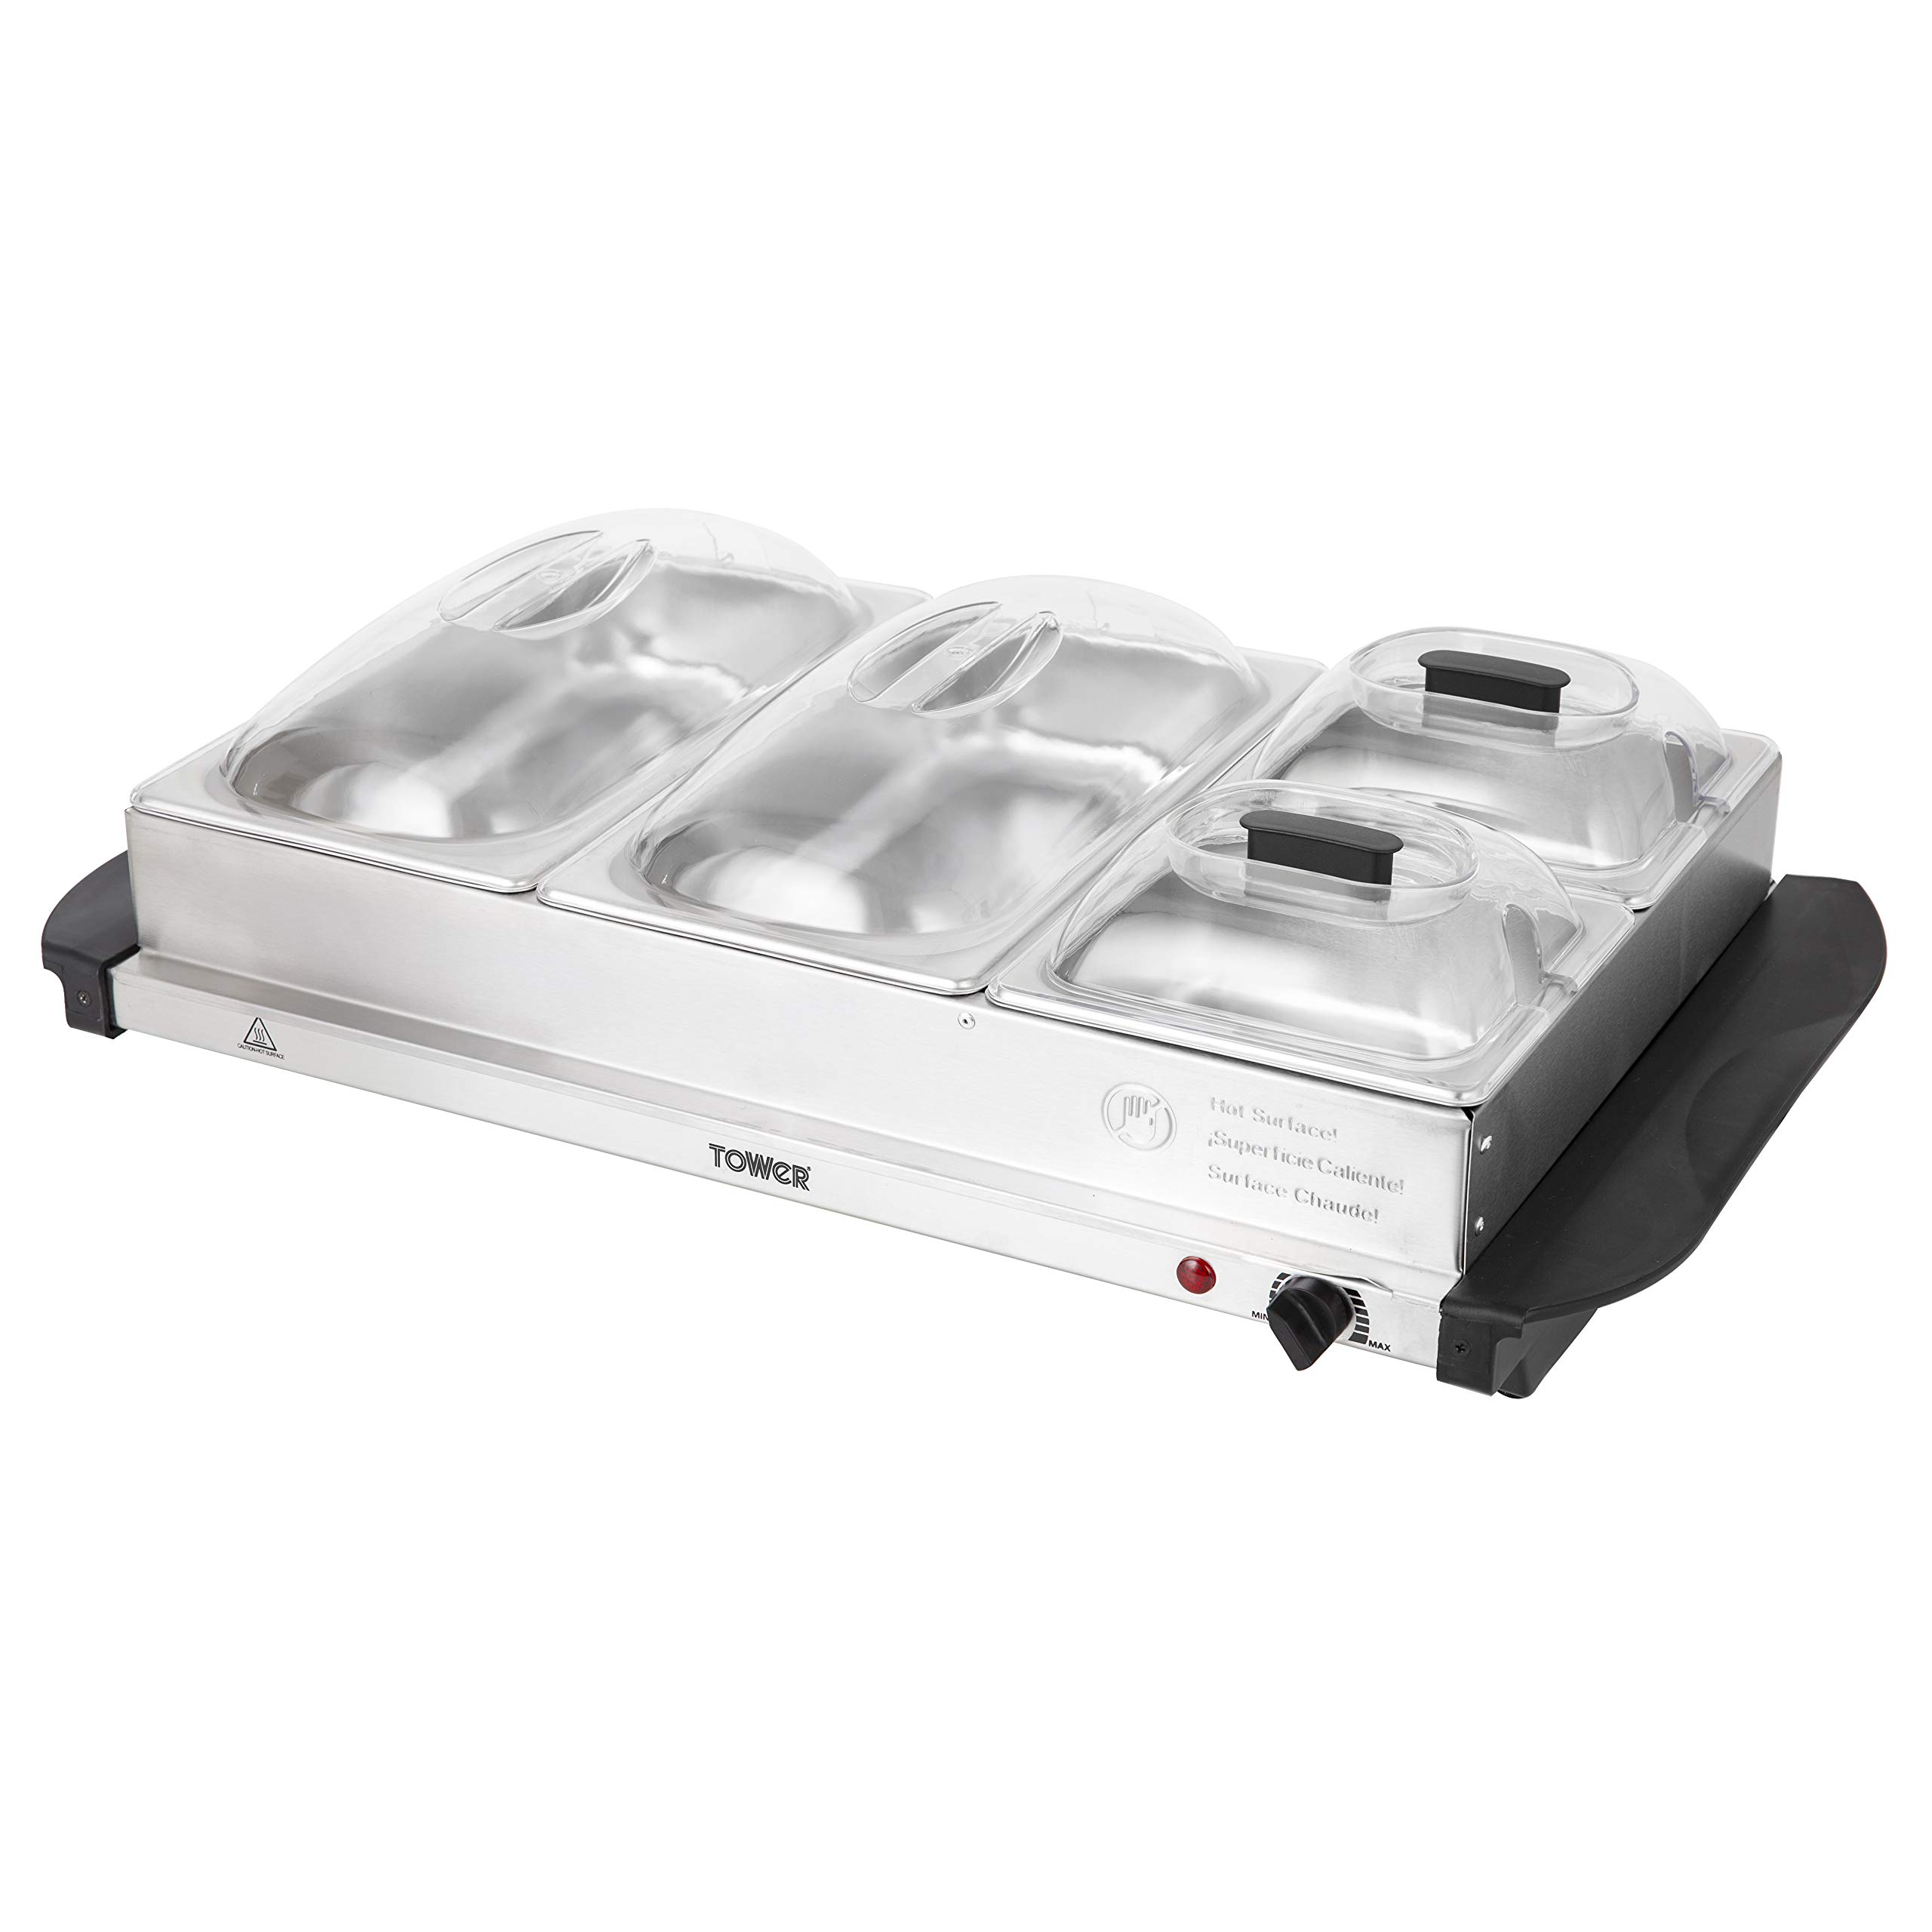 Tower Four Buffet Server and Plate Warmer with 2 x 2.4 and 2 x 1.2 Litre Trays Capacity, 300 W, Stainless Steel